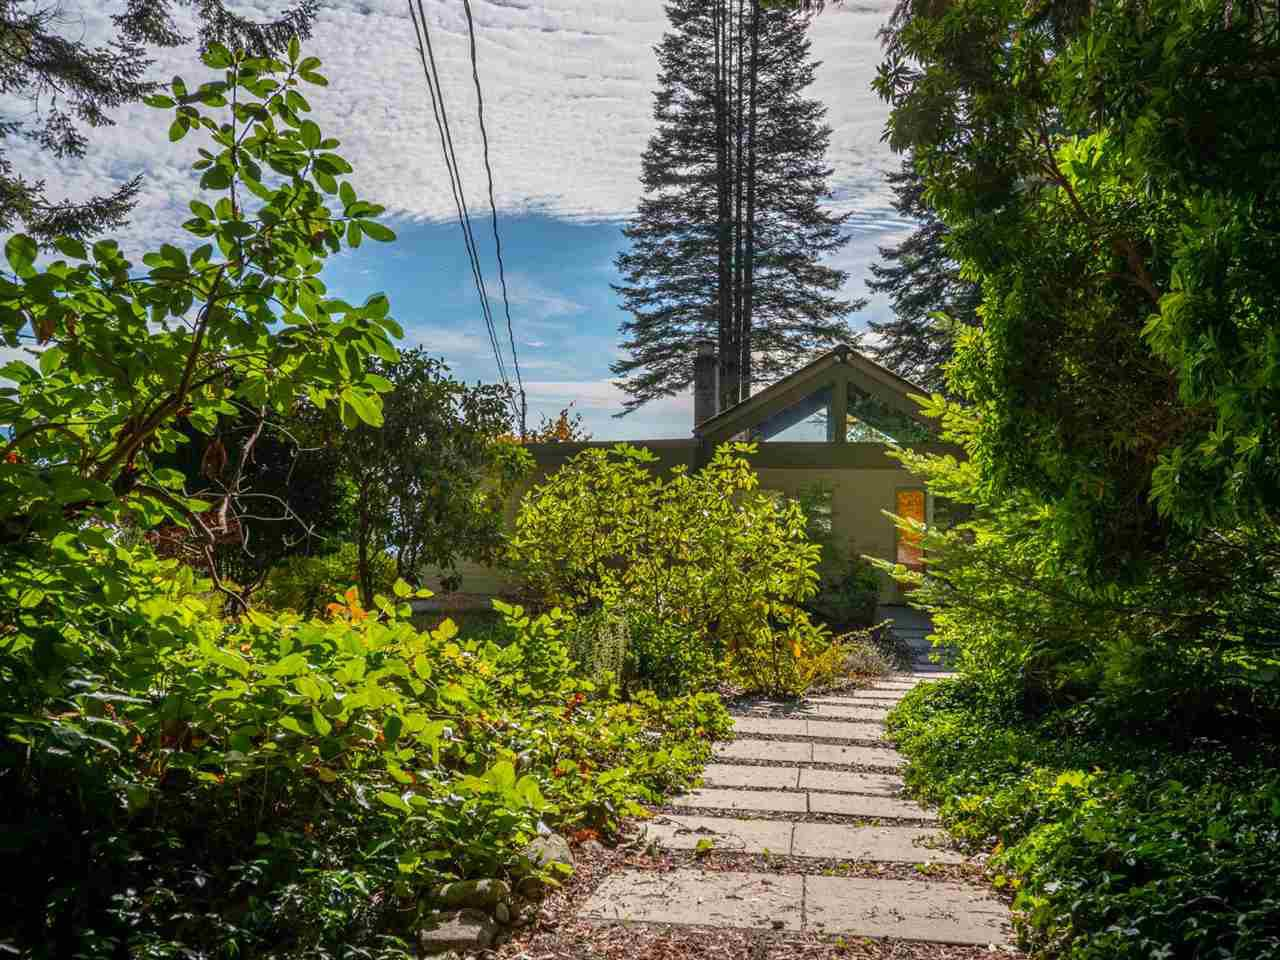 Photo 4: Photos: 877 GOWER POINT Road in Gibsons: Gibsons & Area House for sale (Sunshine Coast)  : MLS®# R2419918